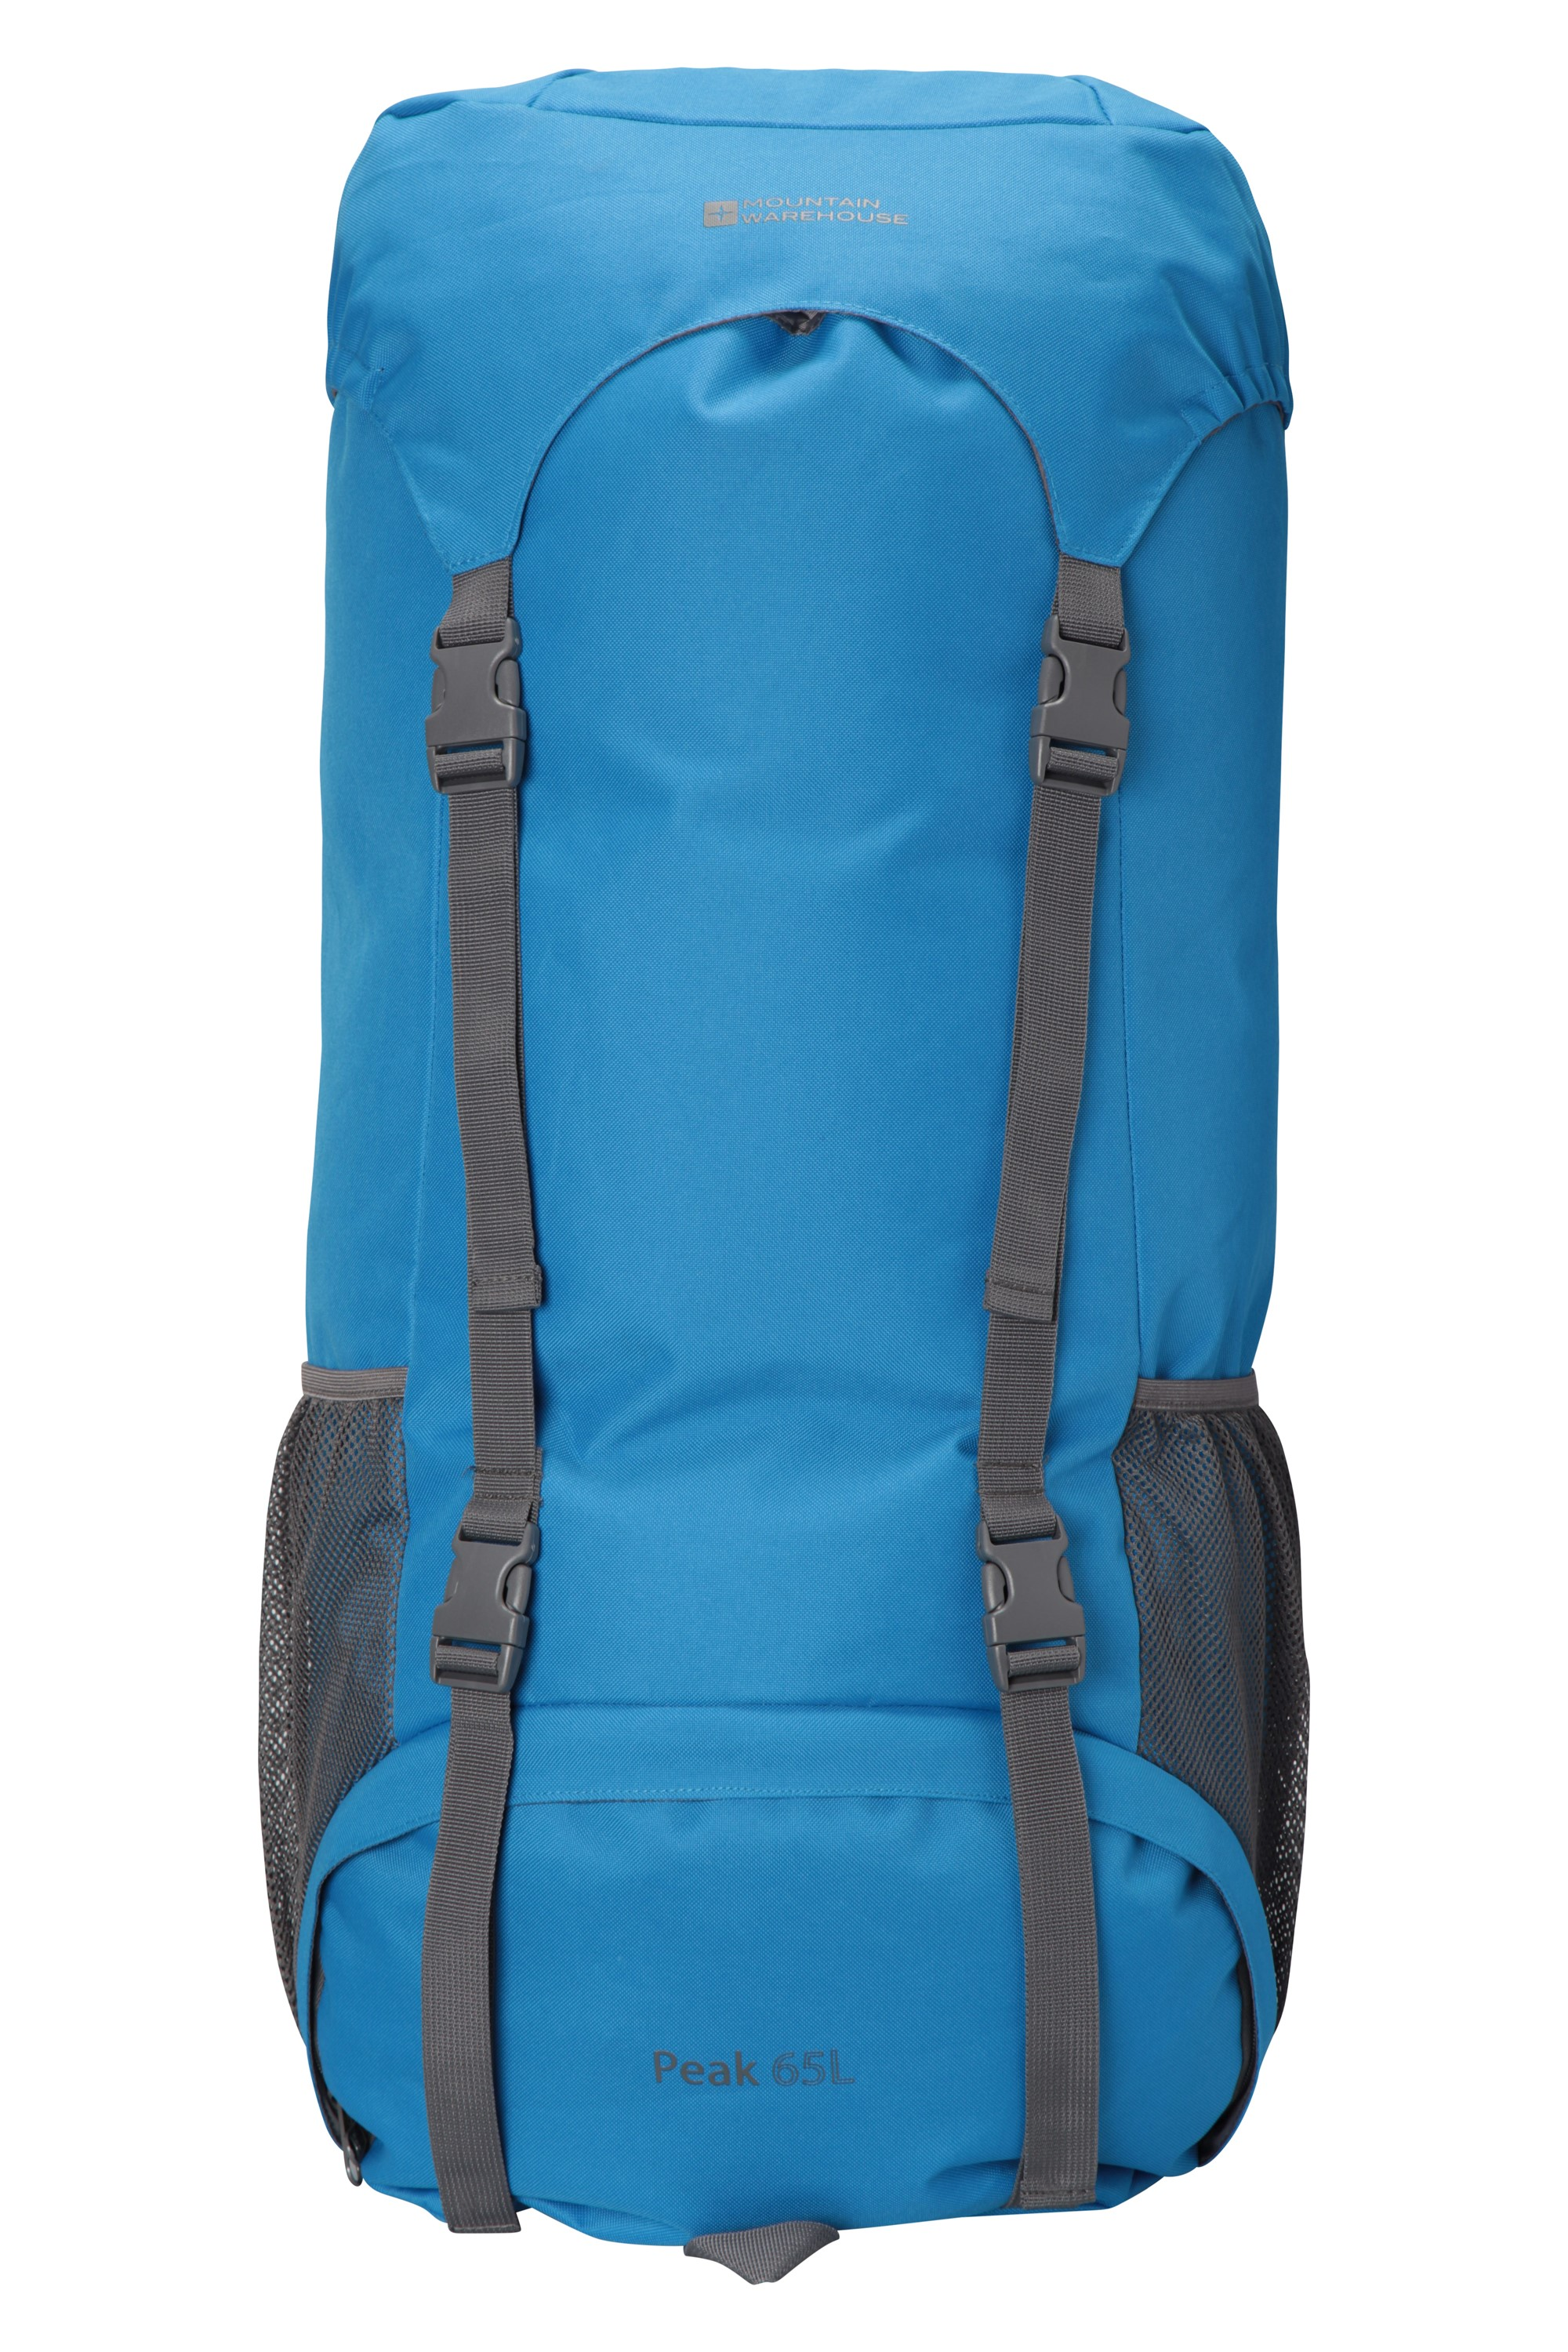 https://www.mountainwarehouse.com/peak-65l-backpack-p20268.aspx/blue/